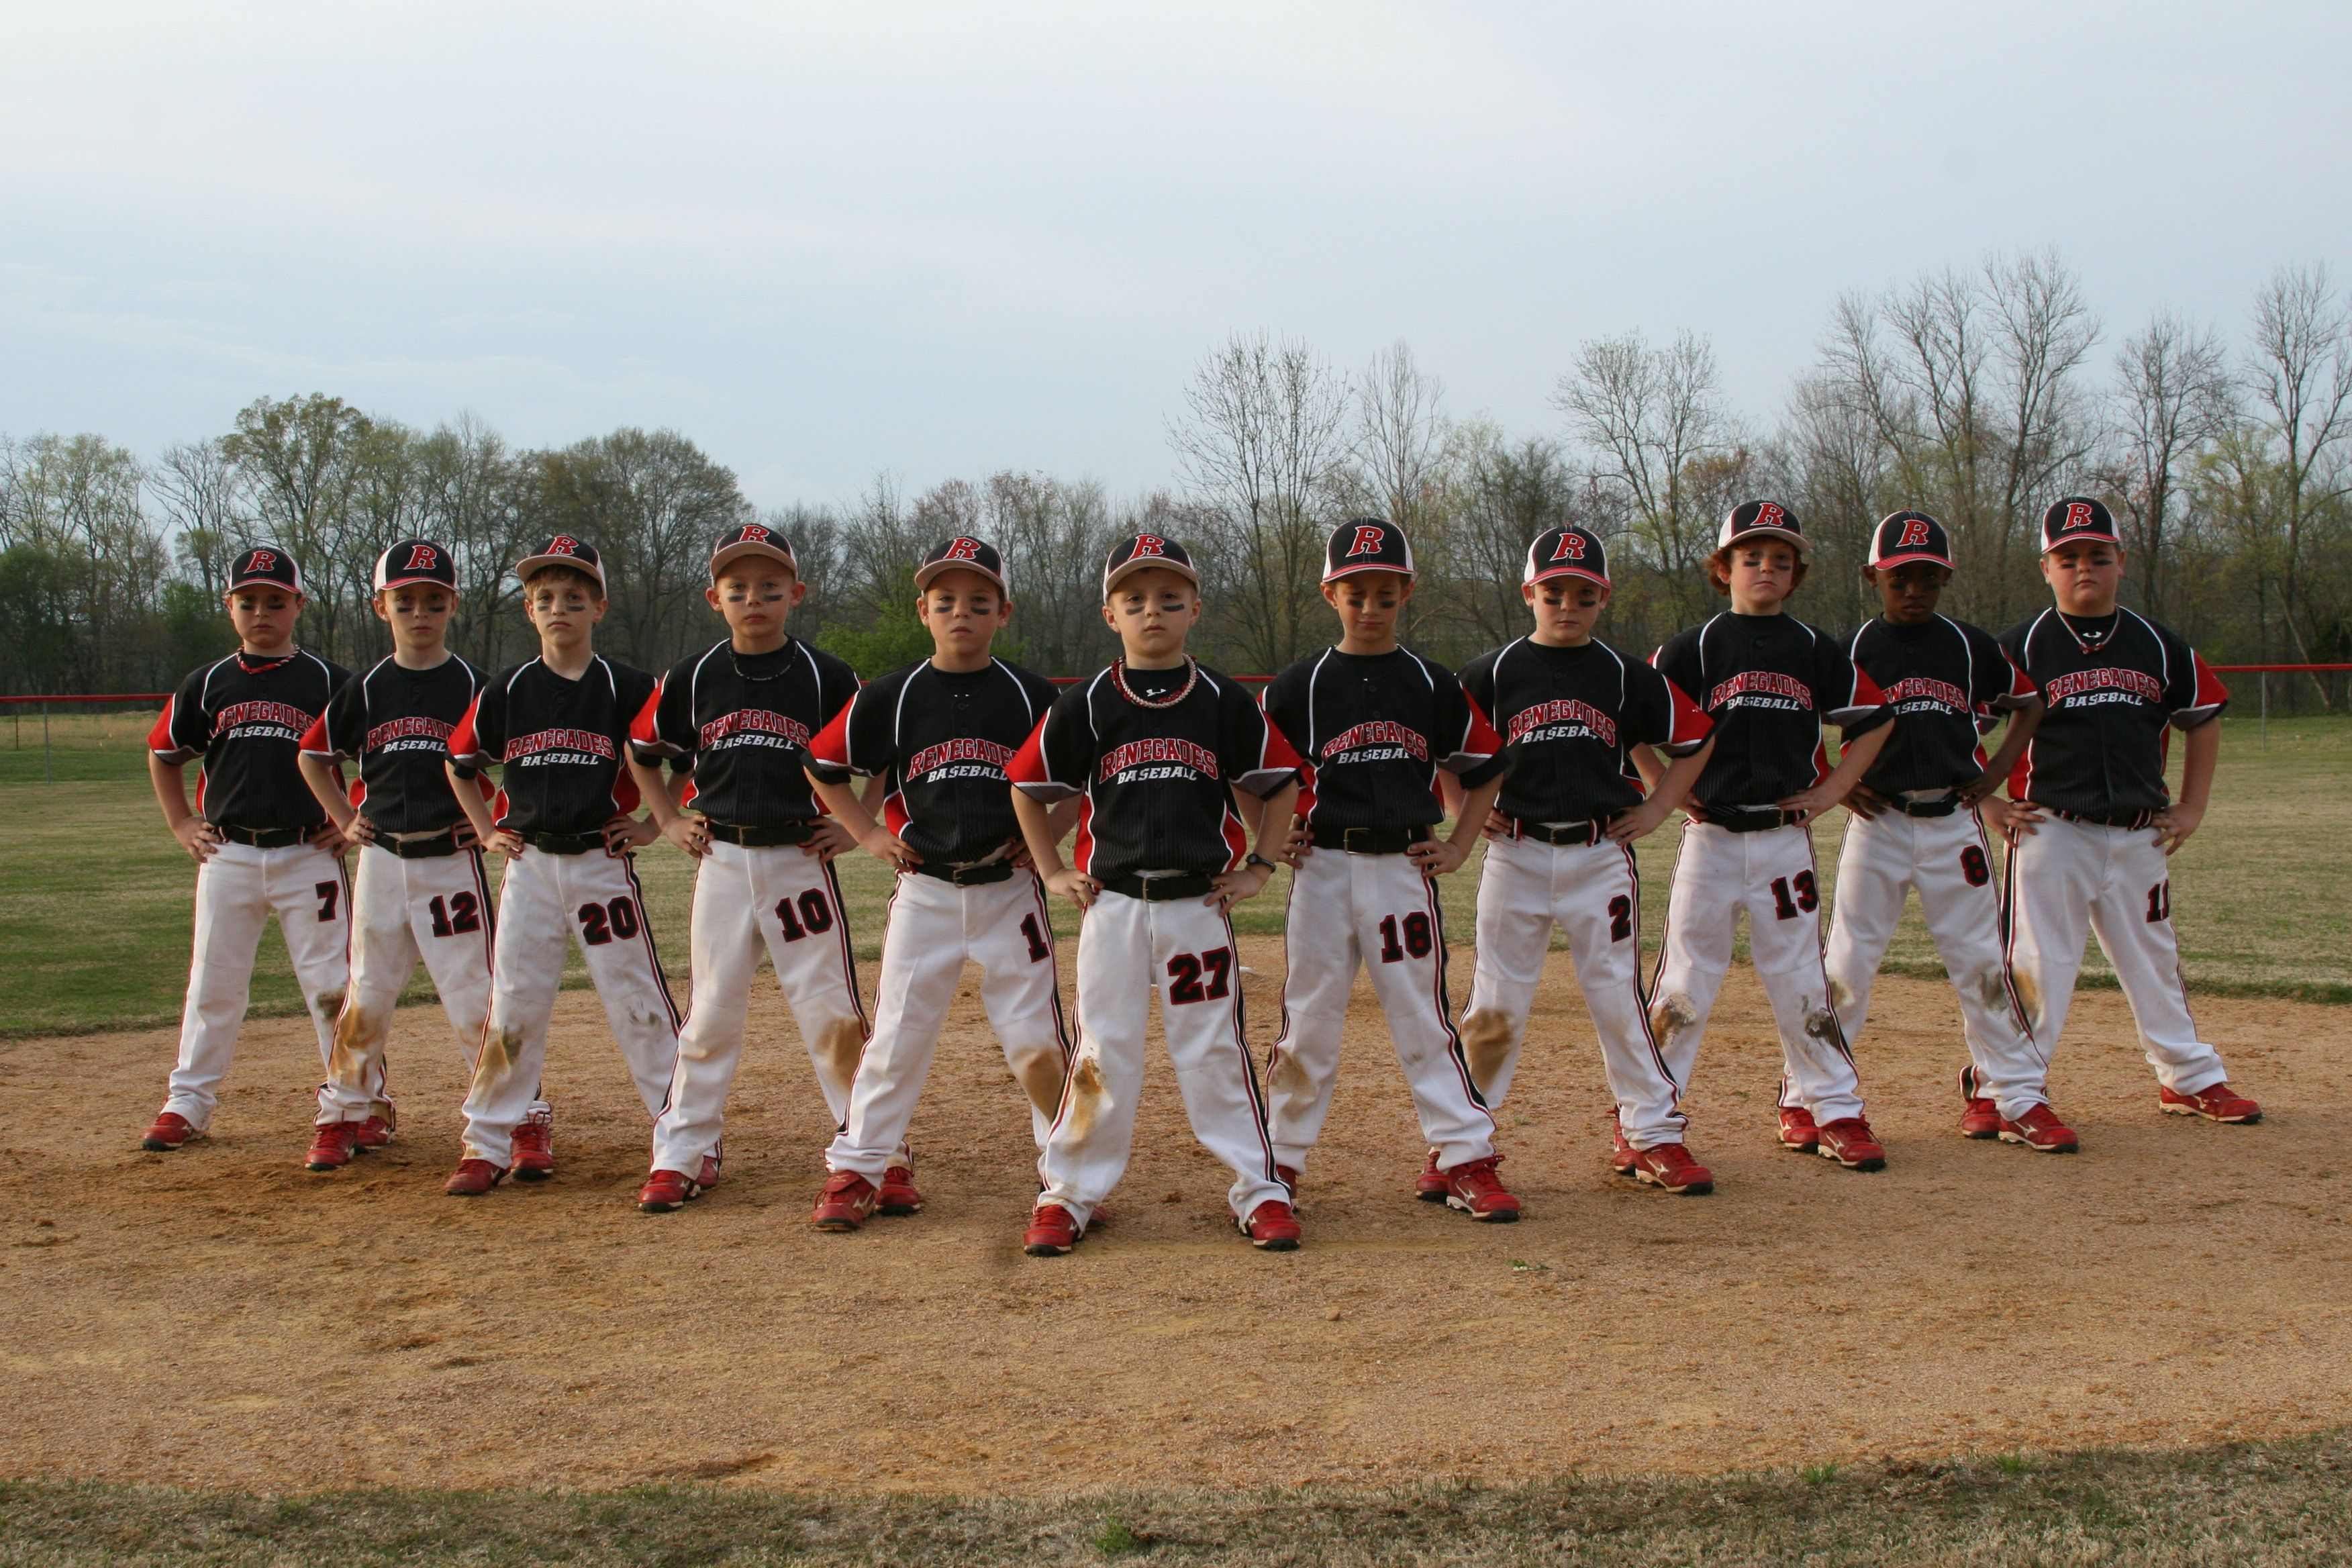 New Ga Baseball Team Pictures Google Search Baseball Team